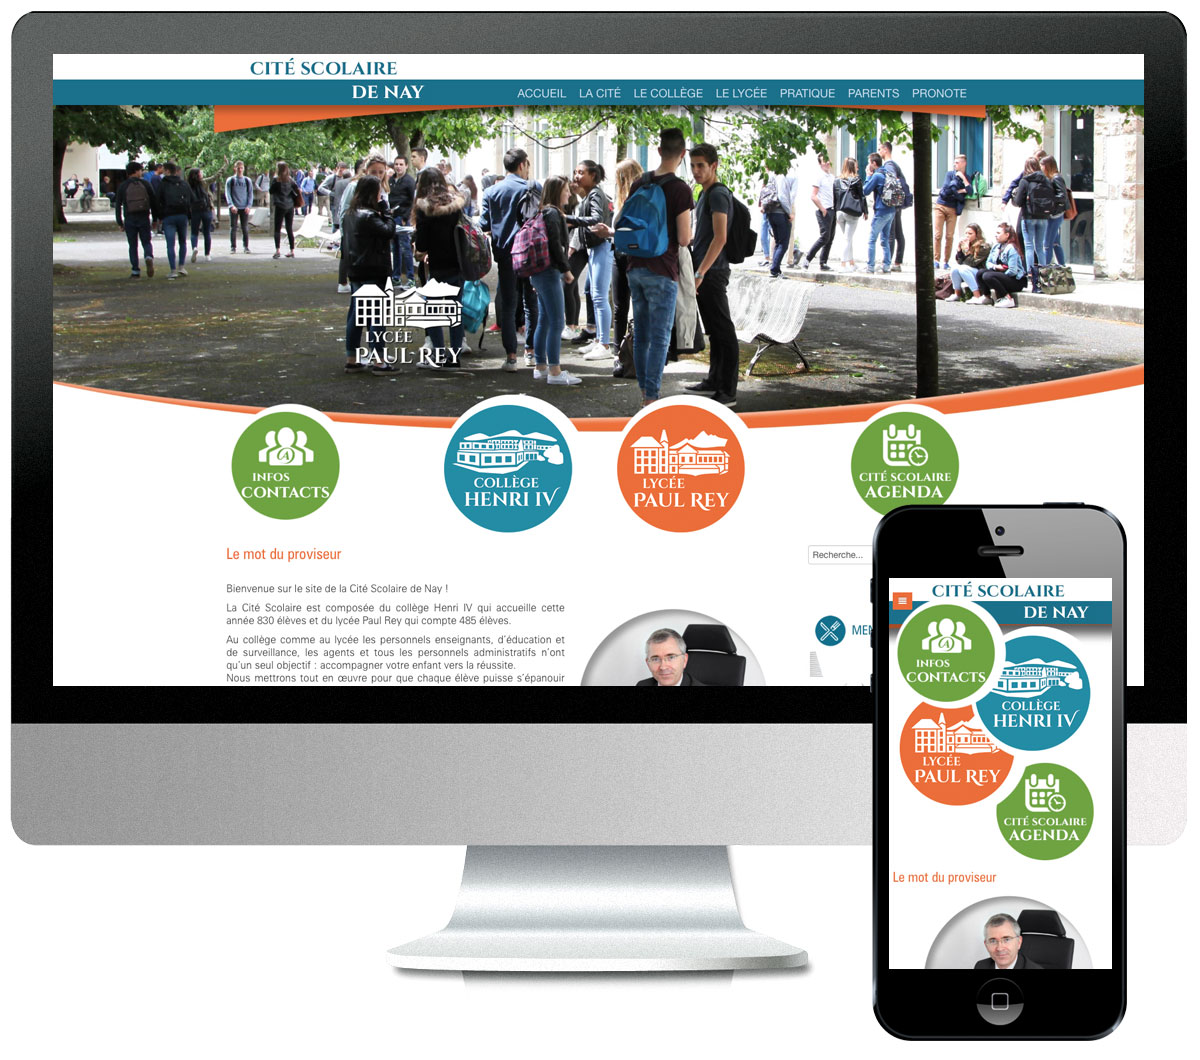 Site internet de la Cité Scolaire de Nay - scom communication